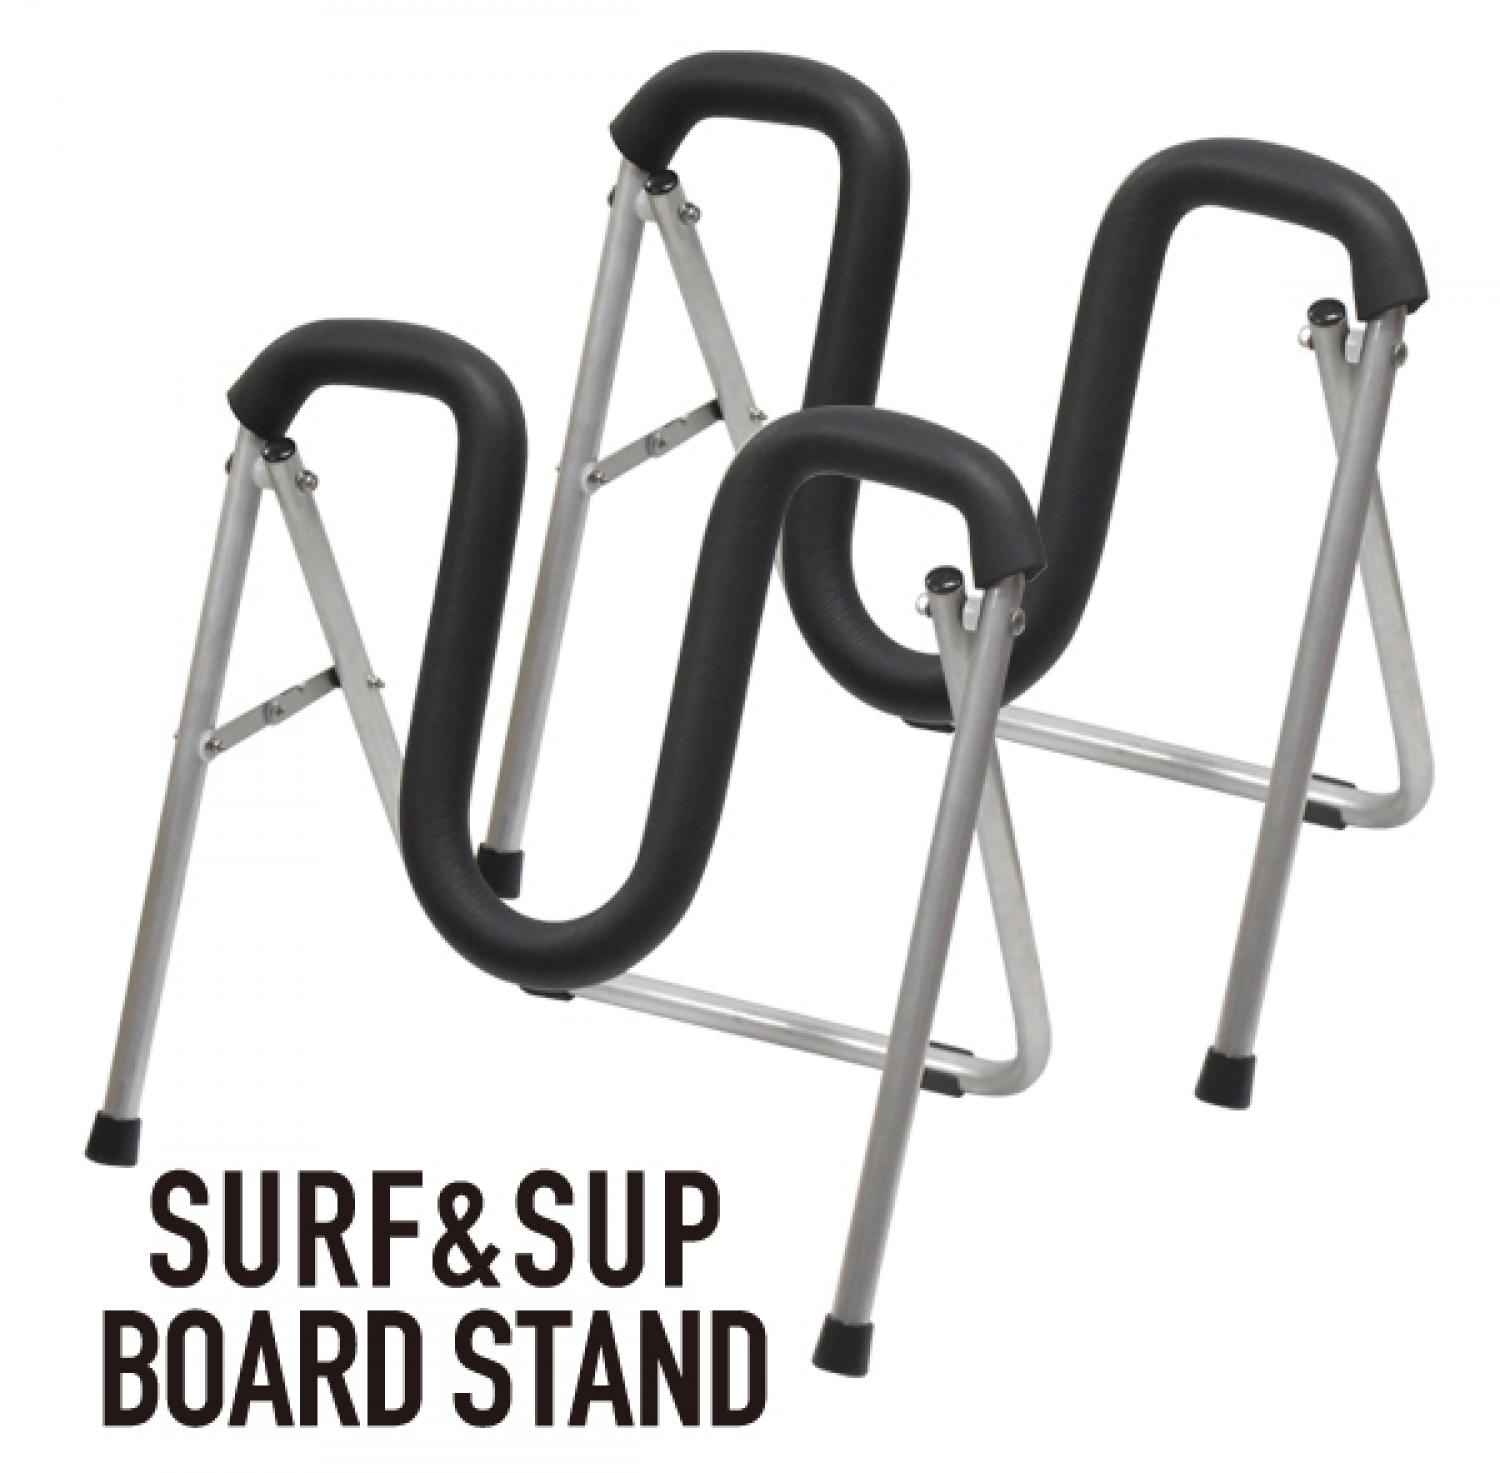 Boards Stand